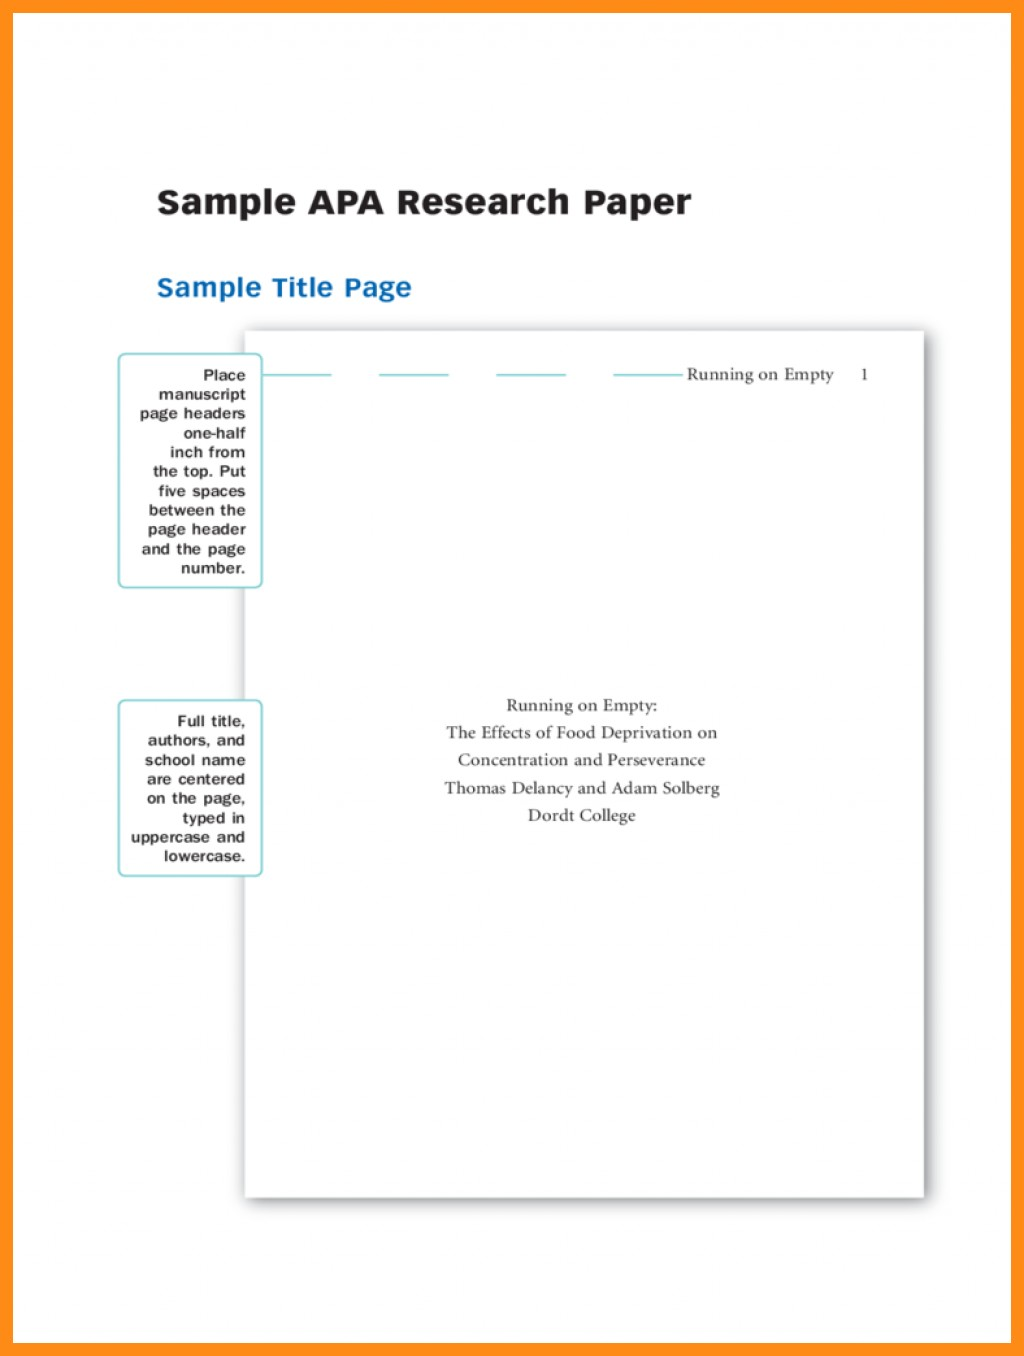 010 Cover Sheet Research Paper Samples Of Papers Apa Format Title Page Sample Dolap Magnetband Formidable For Mla Example Harvard Large